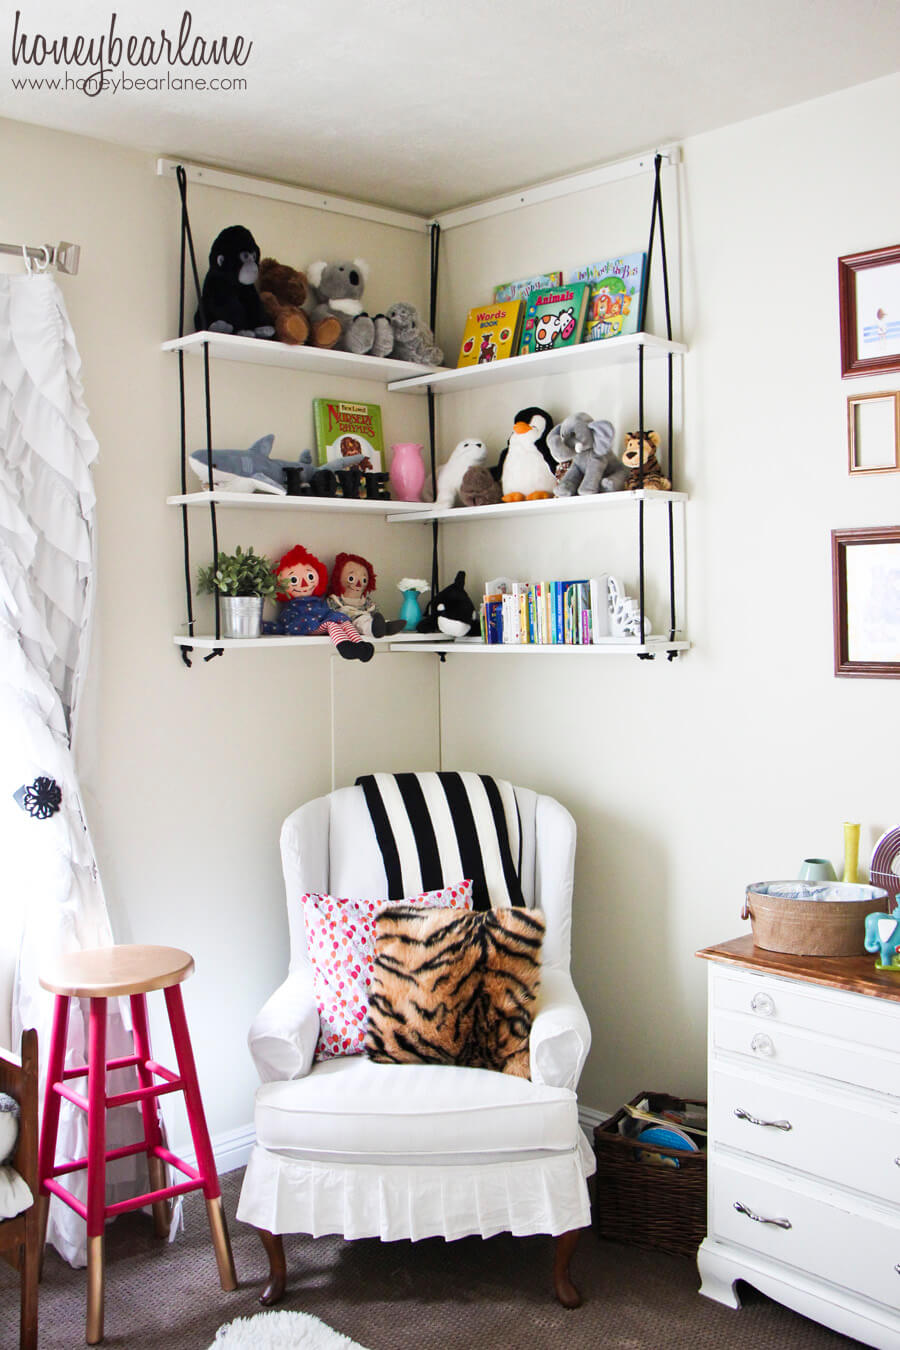 Sweet Hanging Swing-Style Shelves